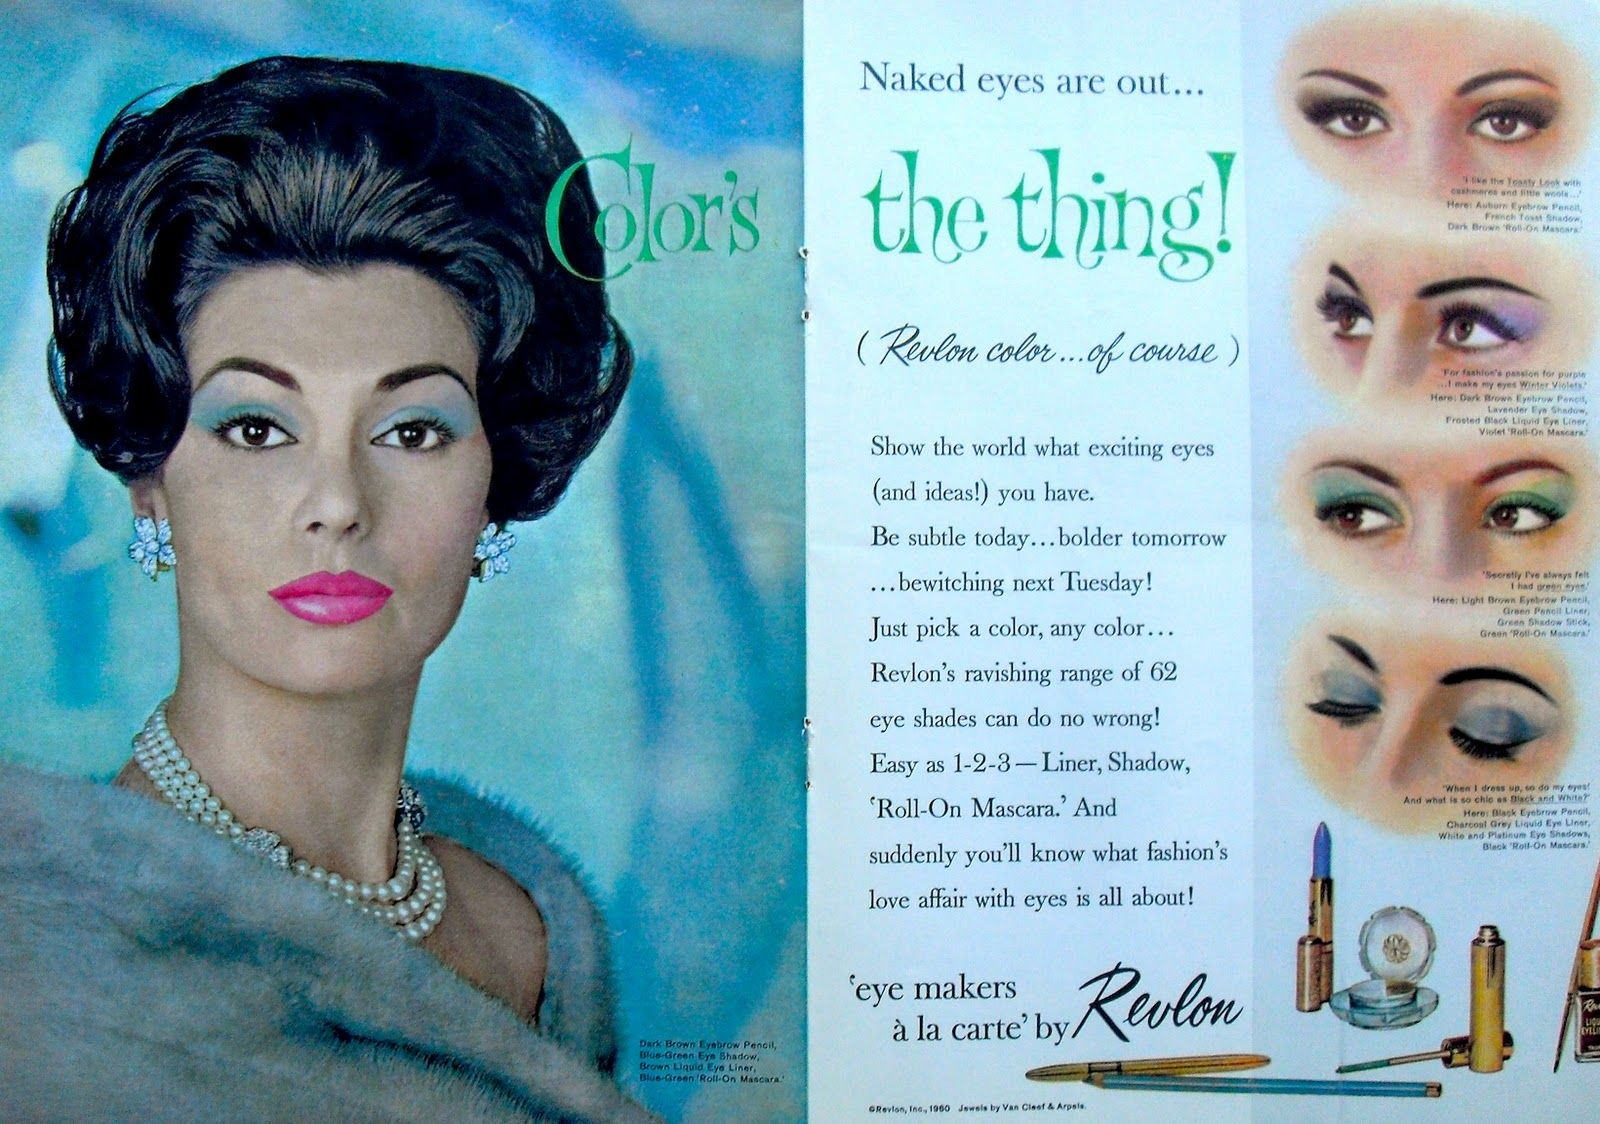 Makeup for black dress green eyes  Colorus the Thing  Vintage ads Vintage makeup ads and Makeup ads